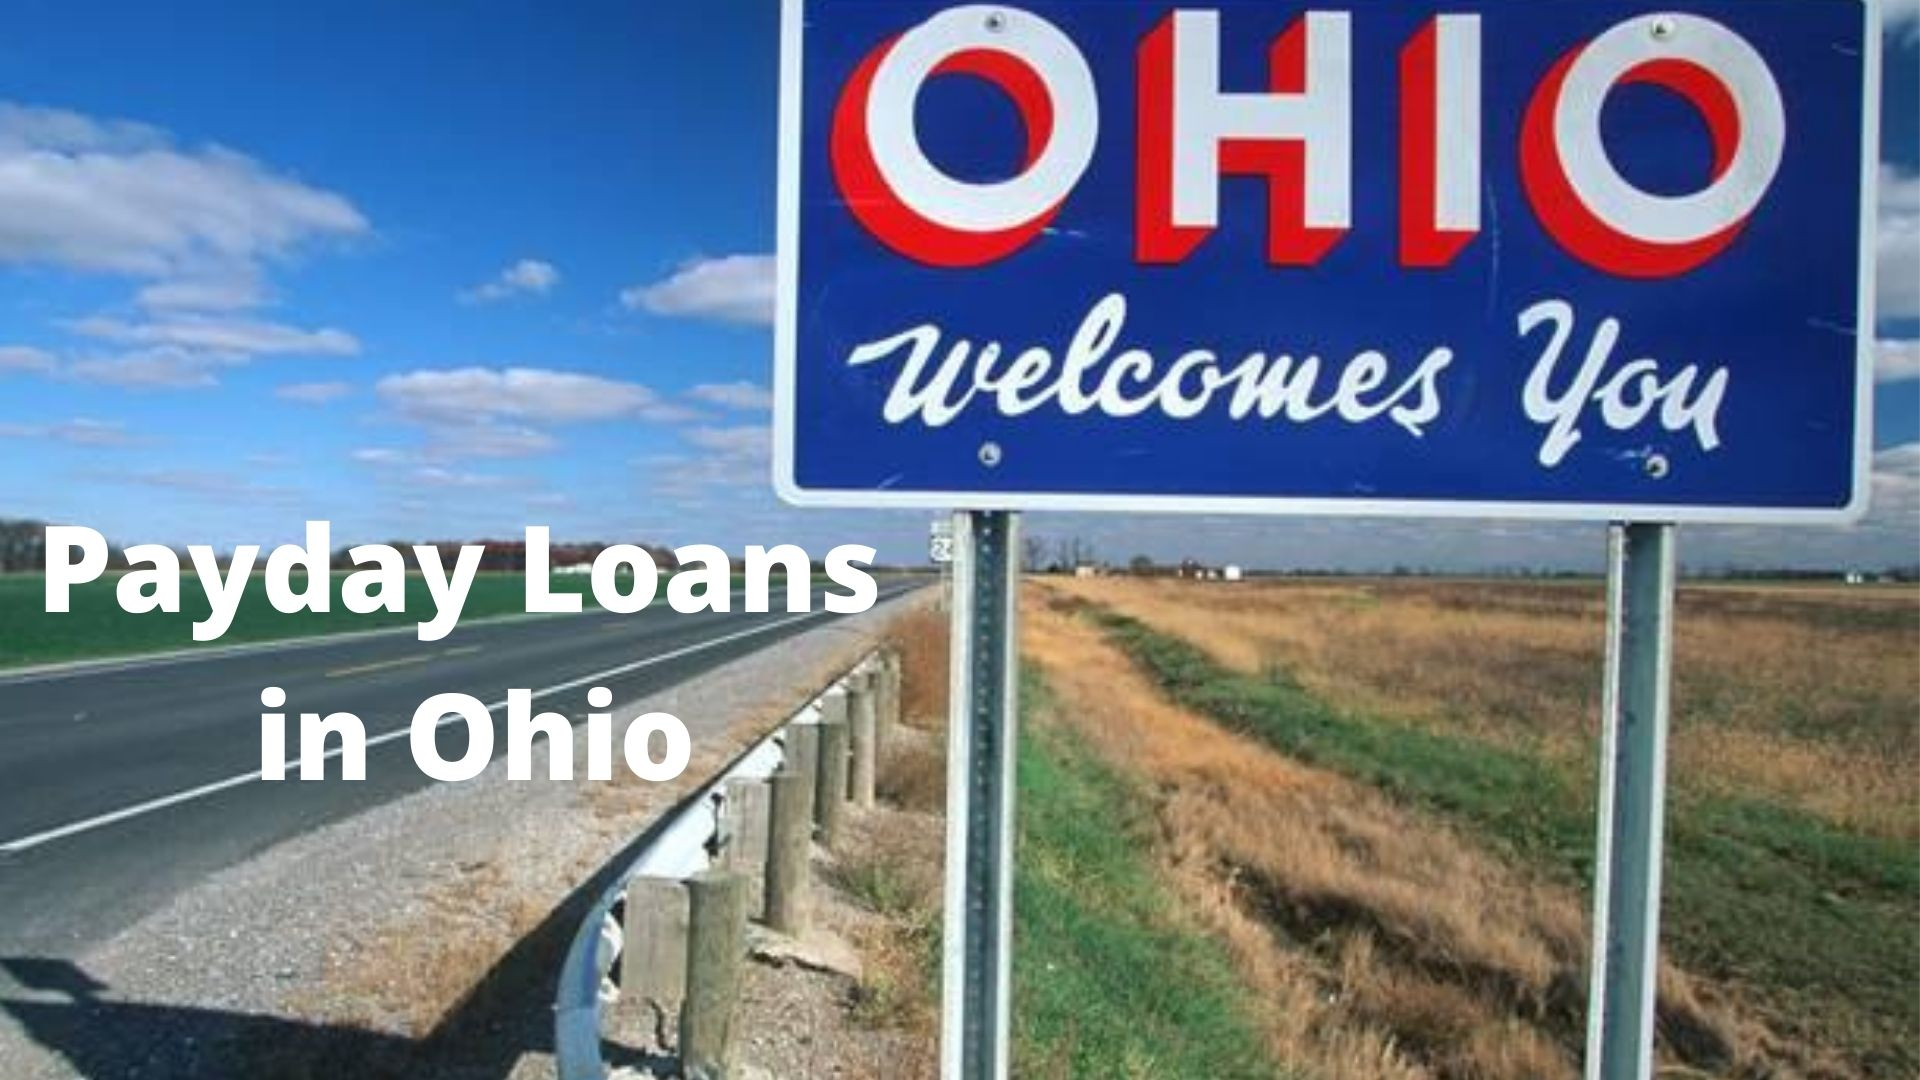 All you need to know about Payday Loans in Ohio